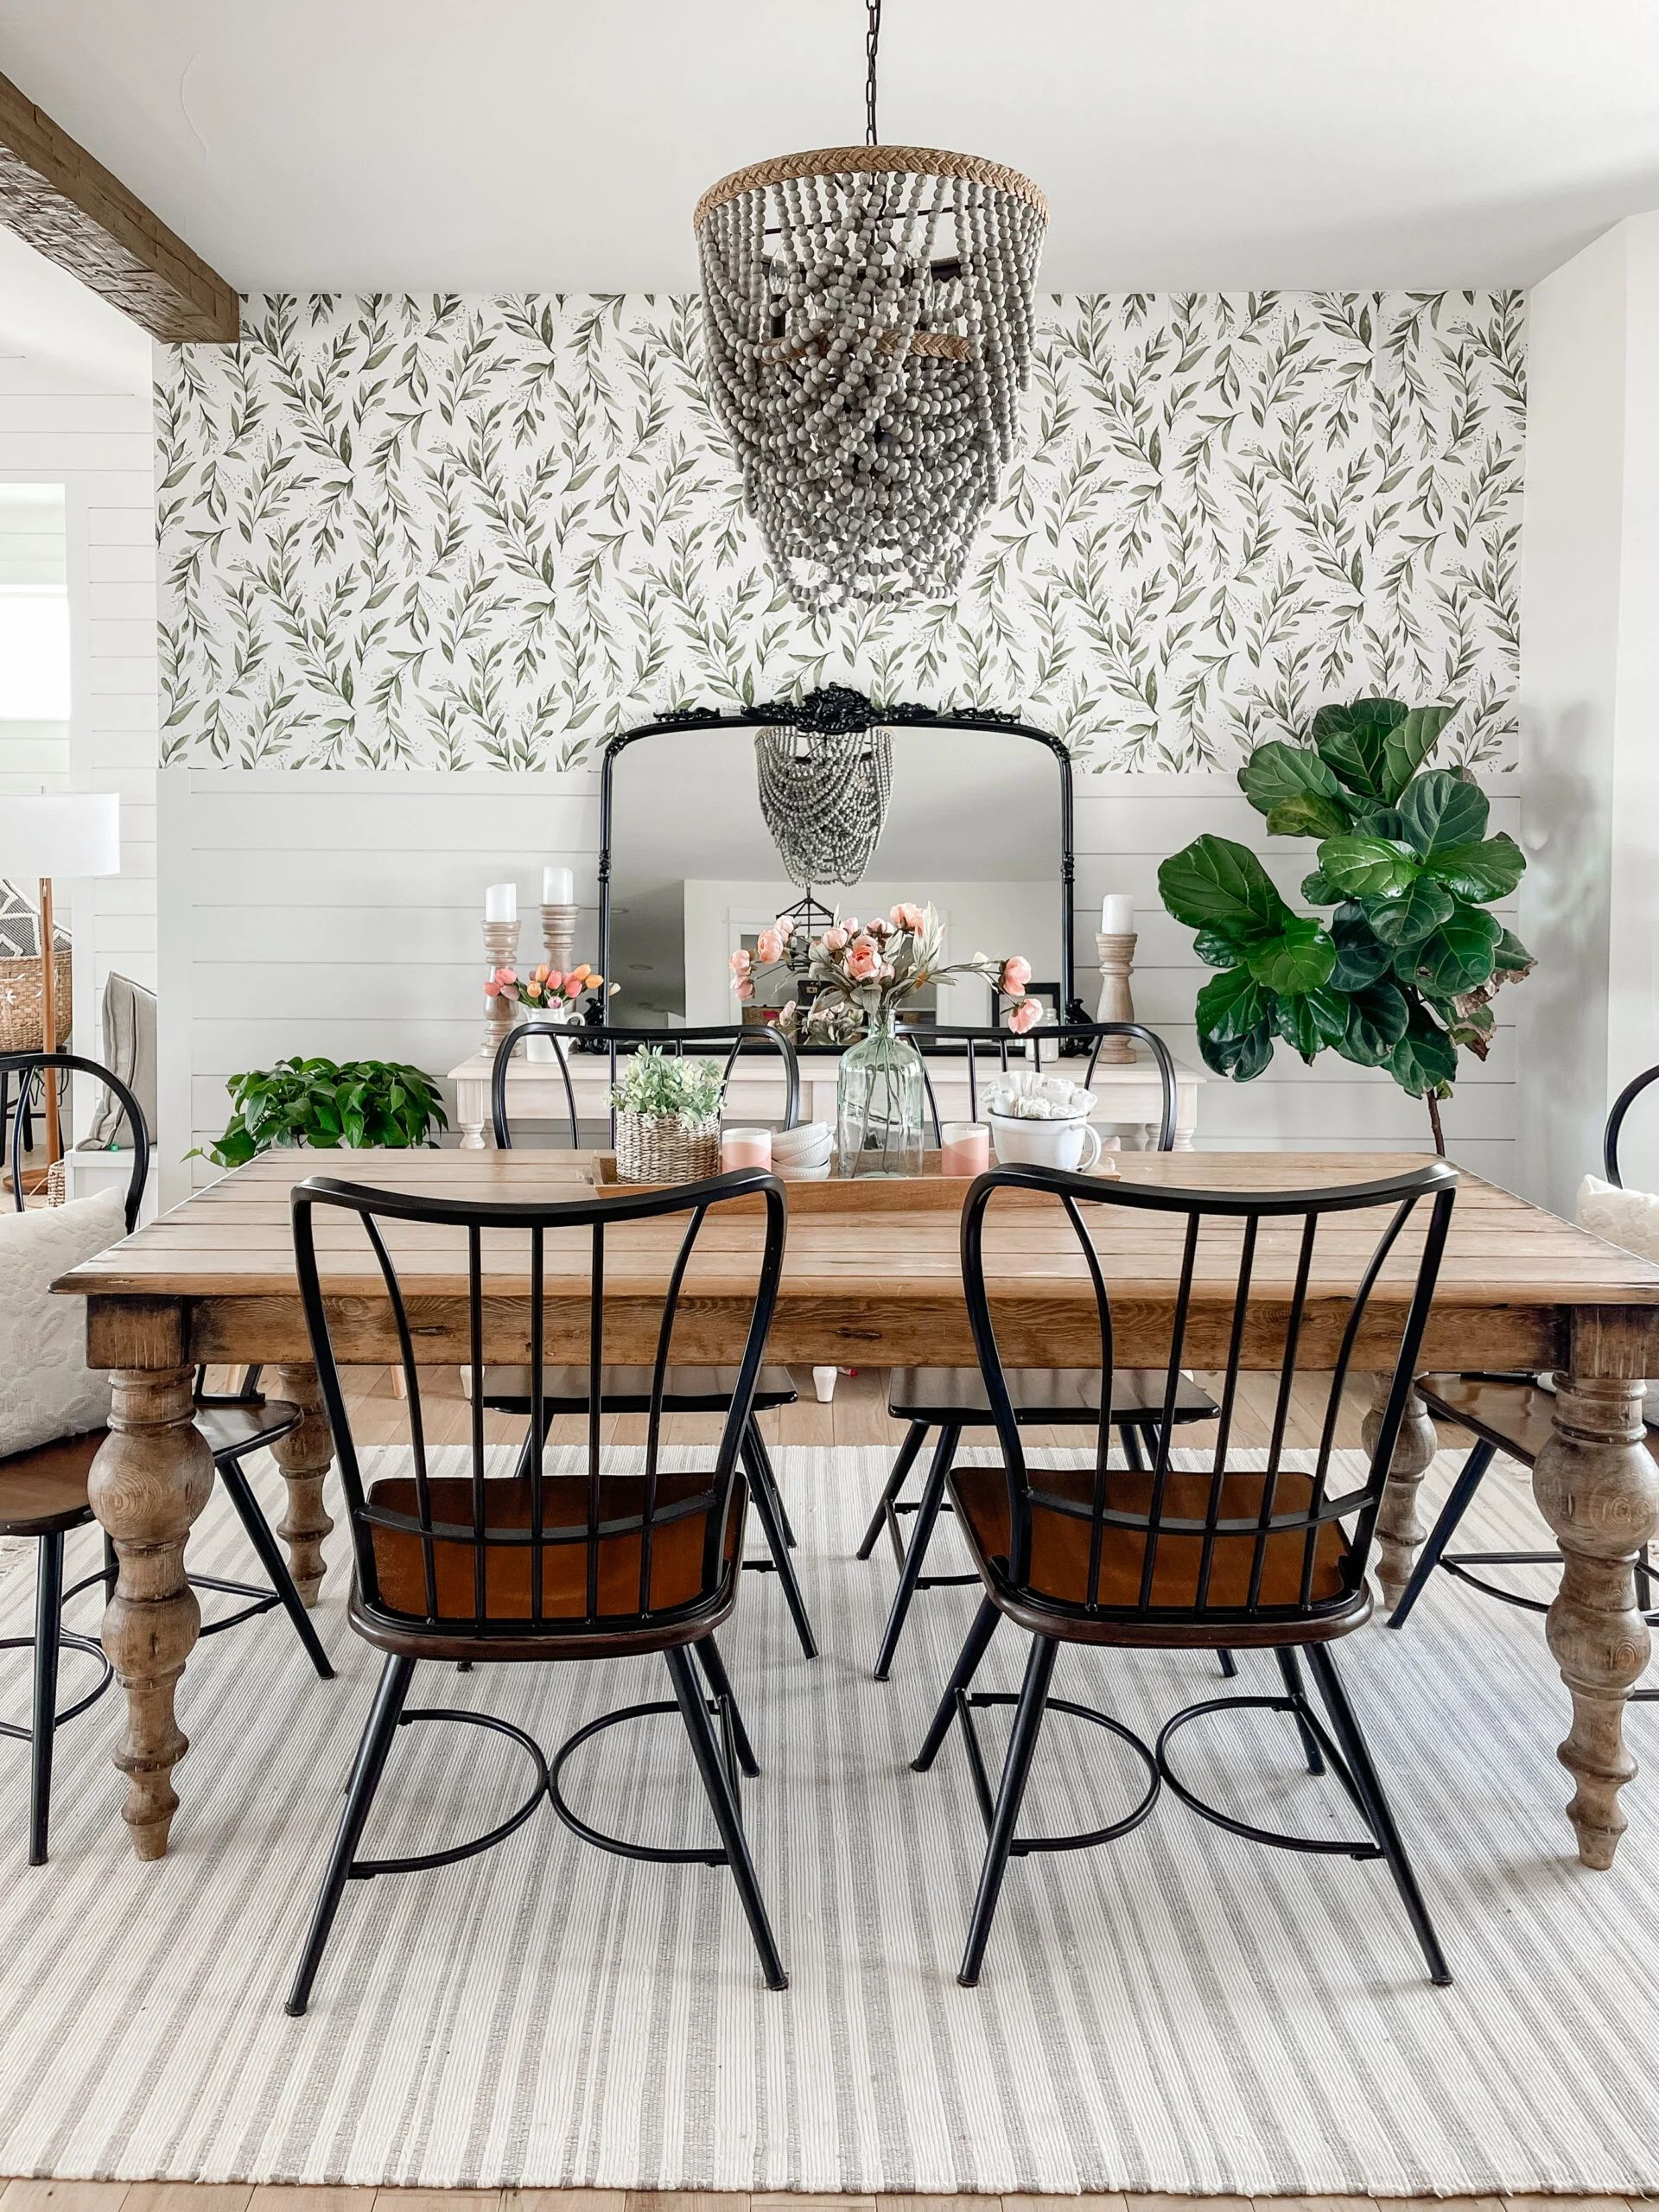 500 Dining Rooms Ideas In 2021 Home Decor Room